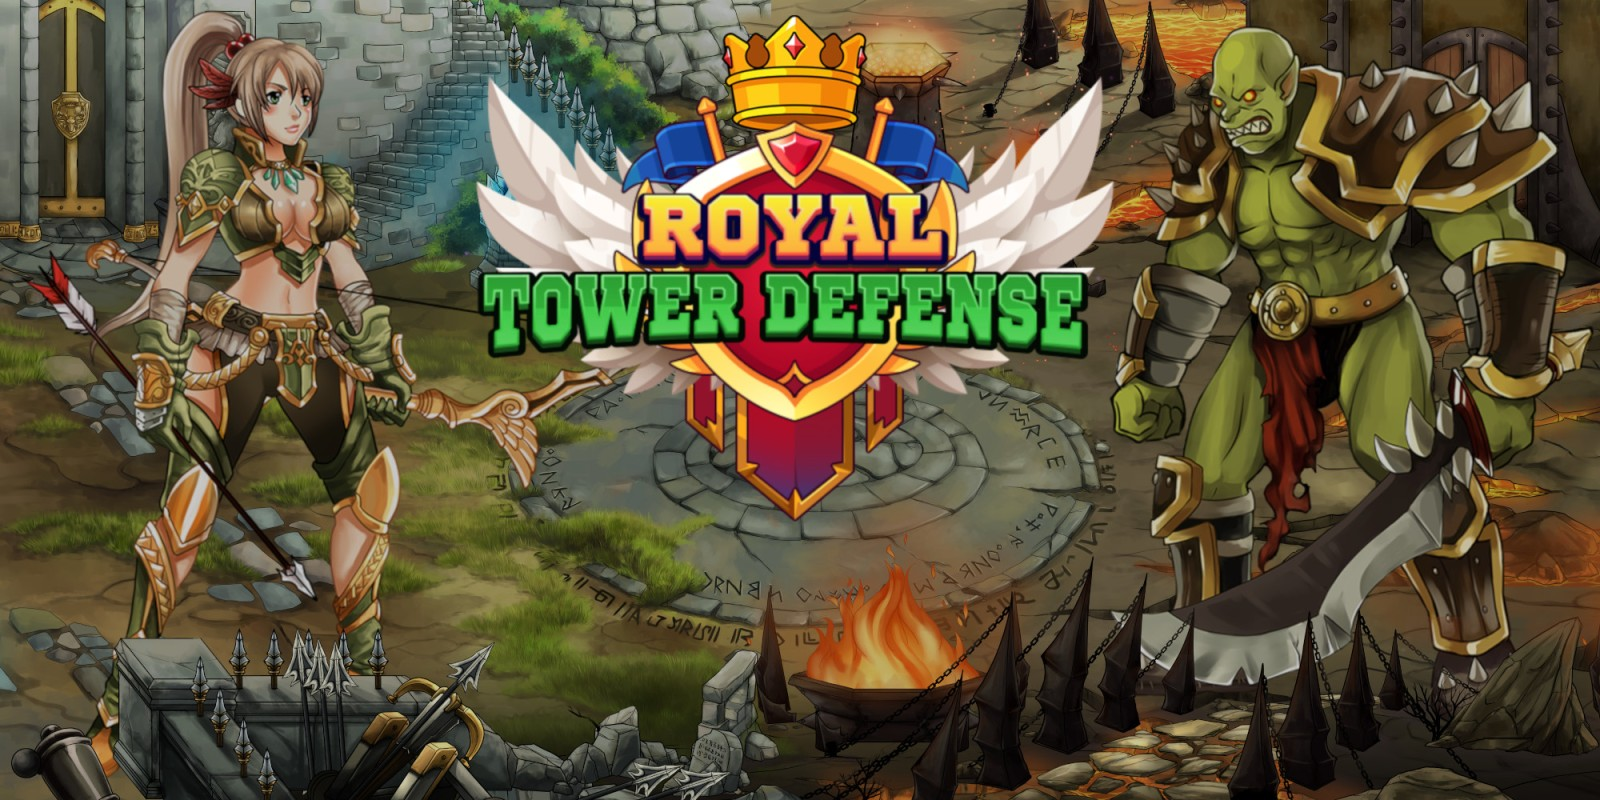 Royal Tower Defense